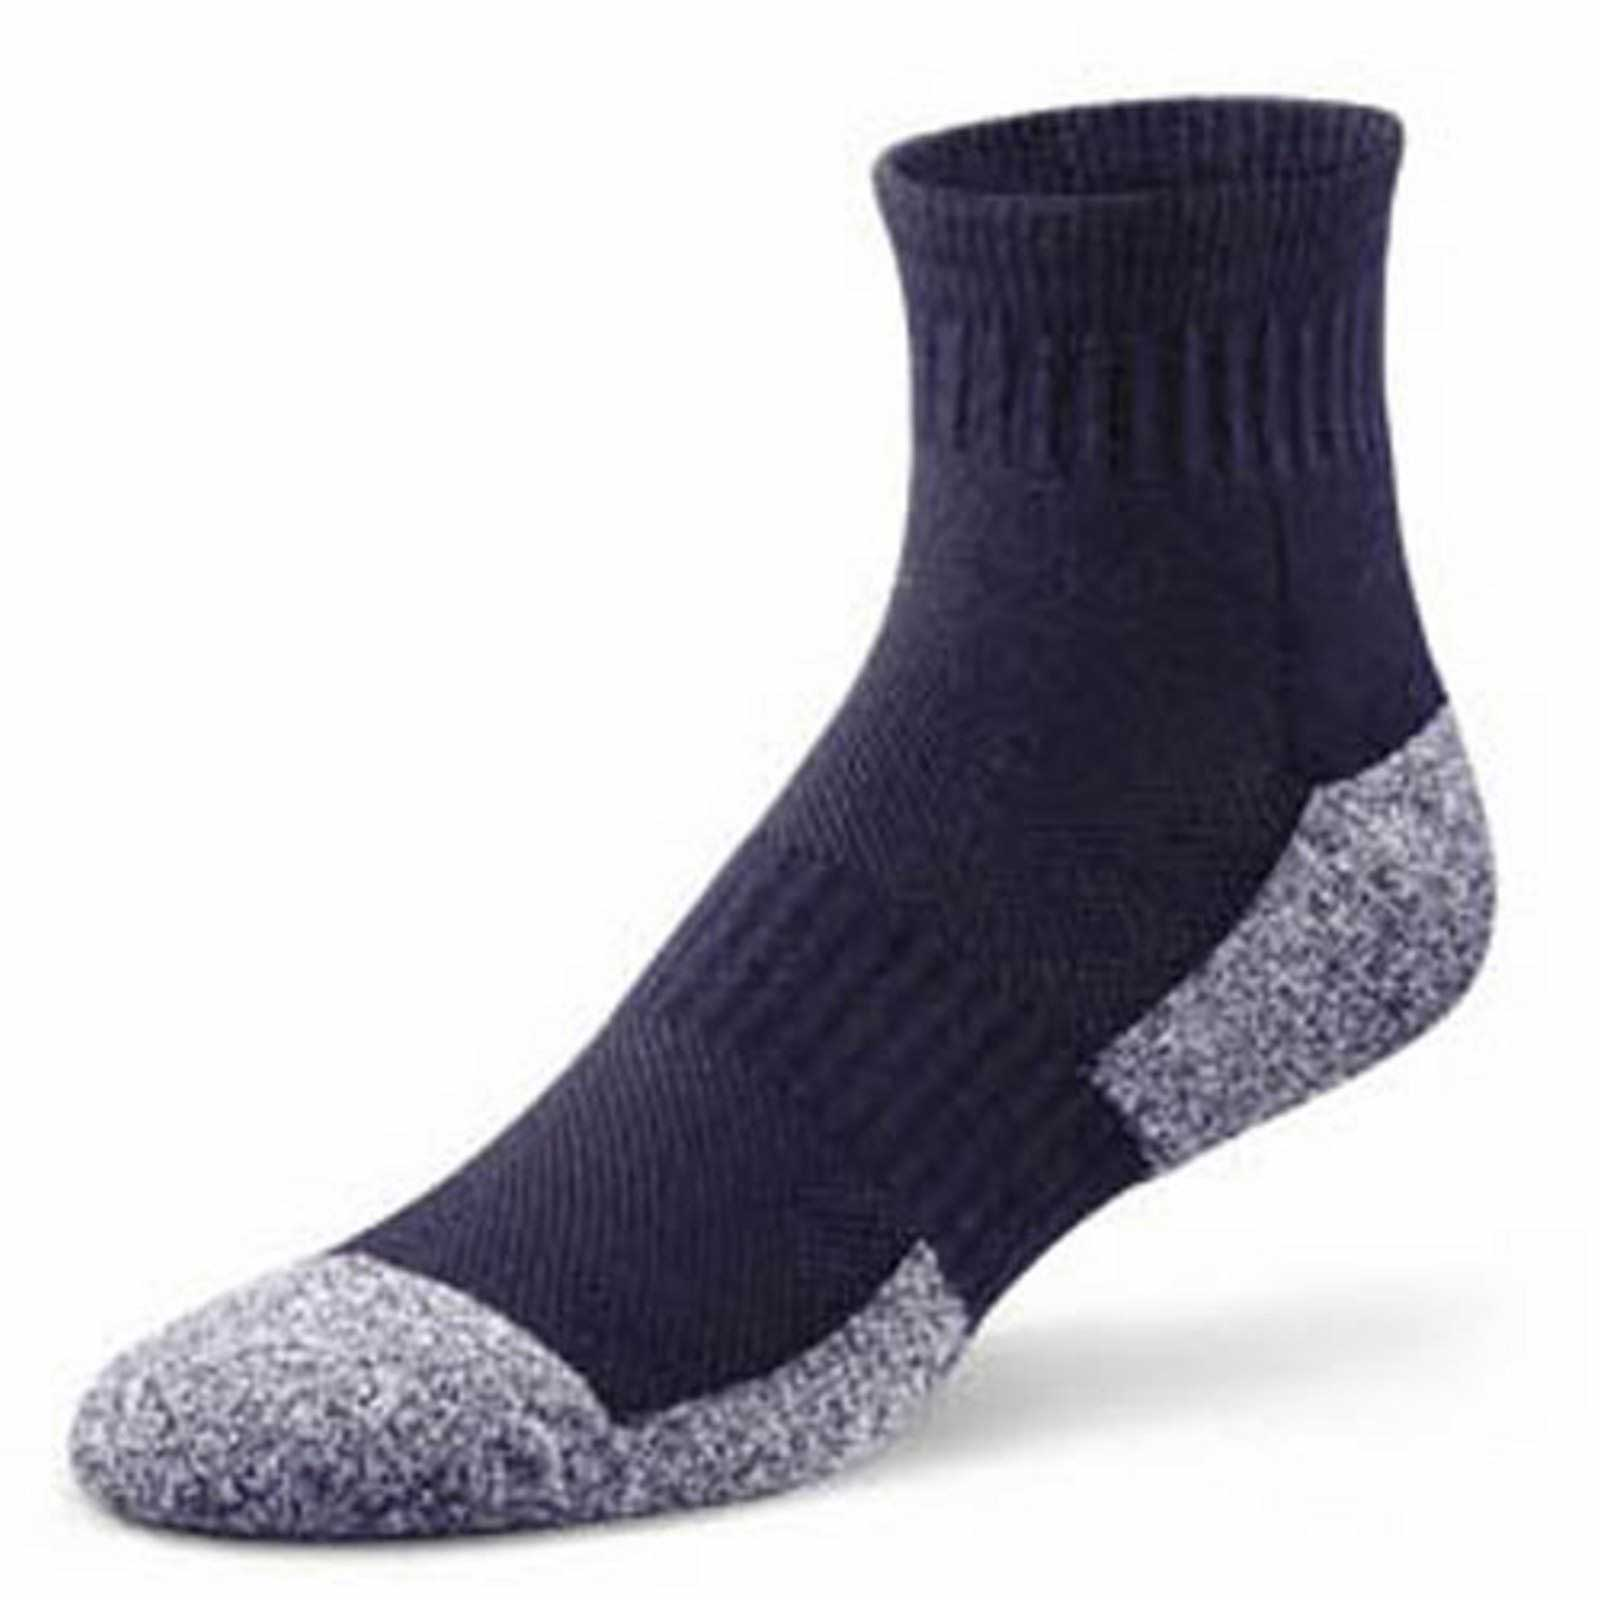 Dr. Comfort - Ankle Socks - Athletic, Casual, Dress, Medical